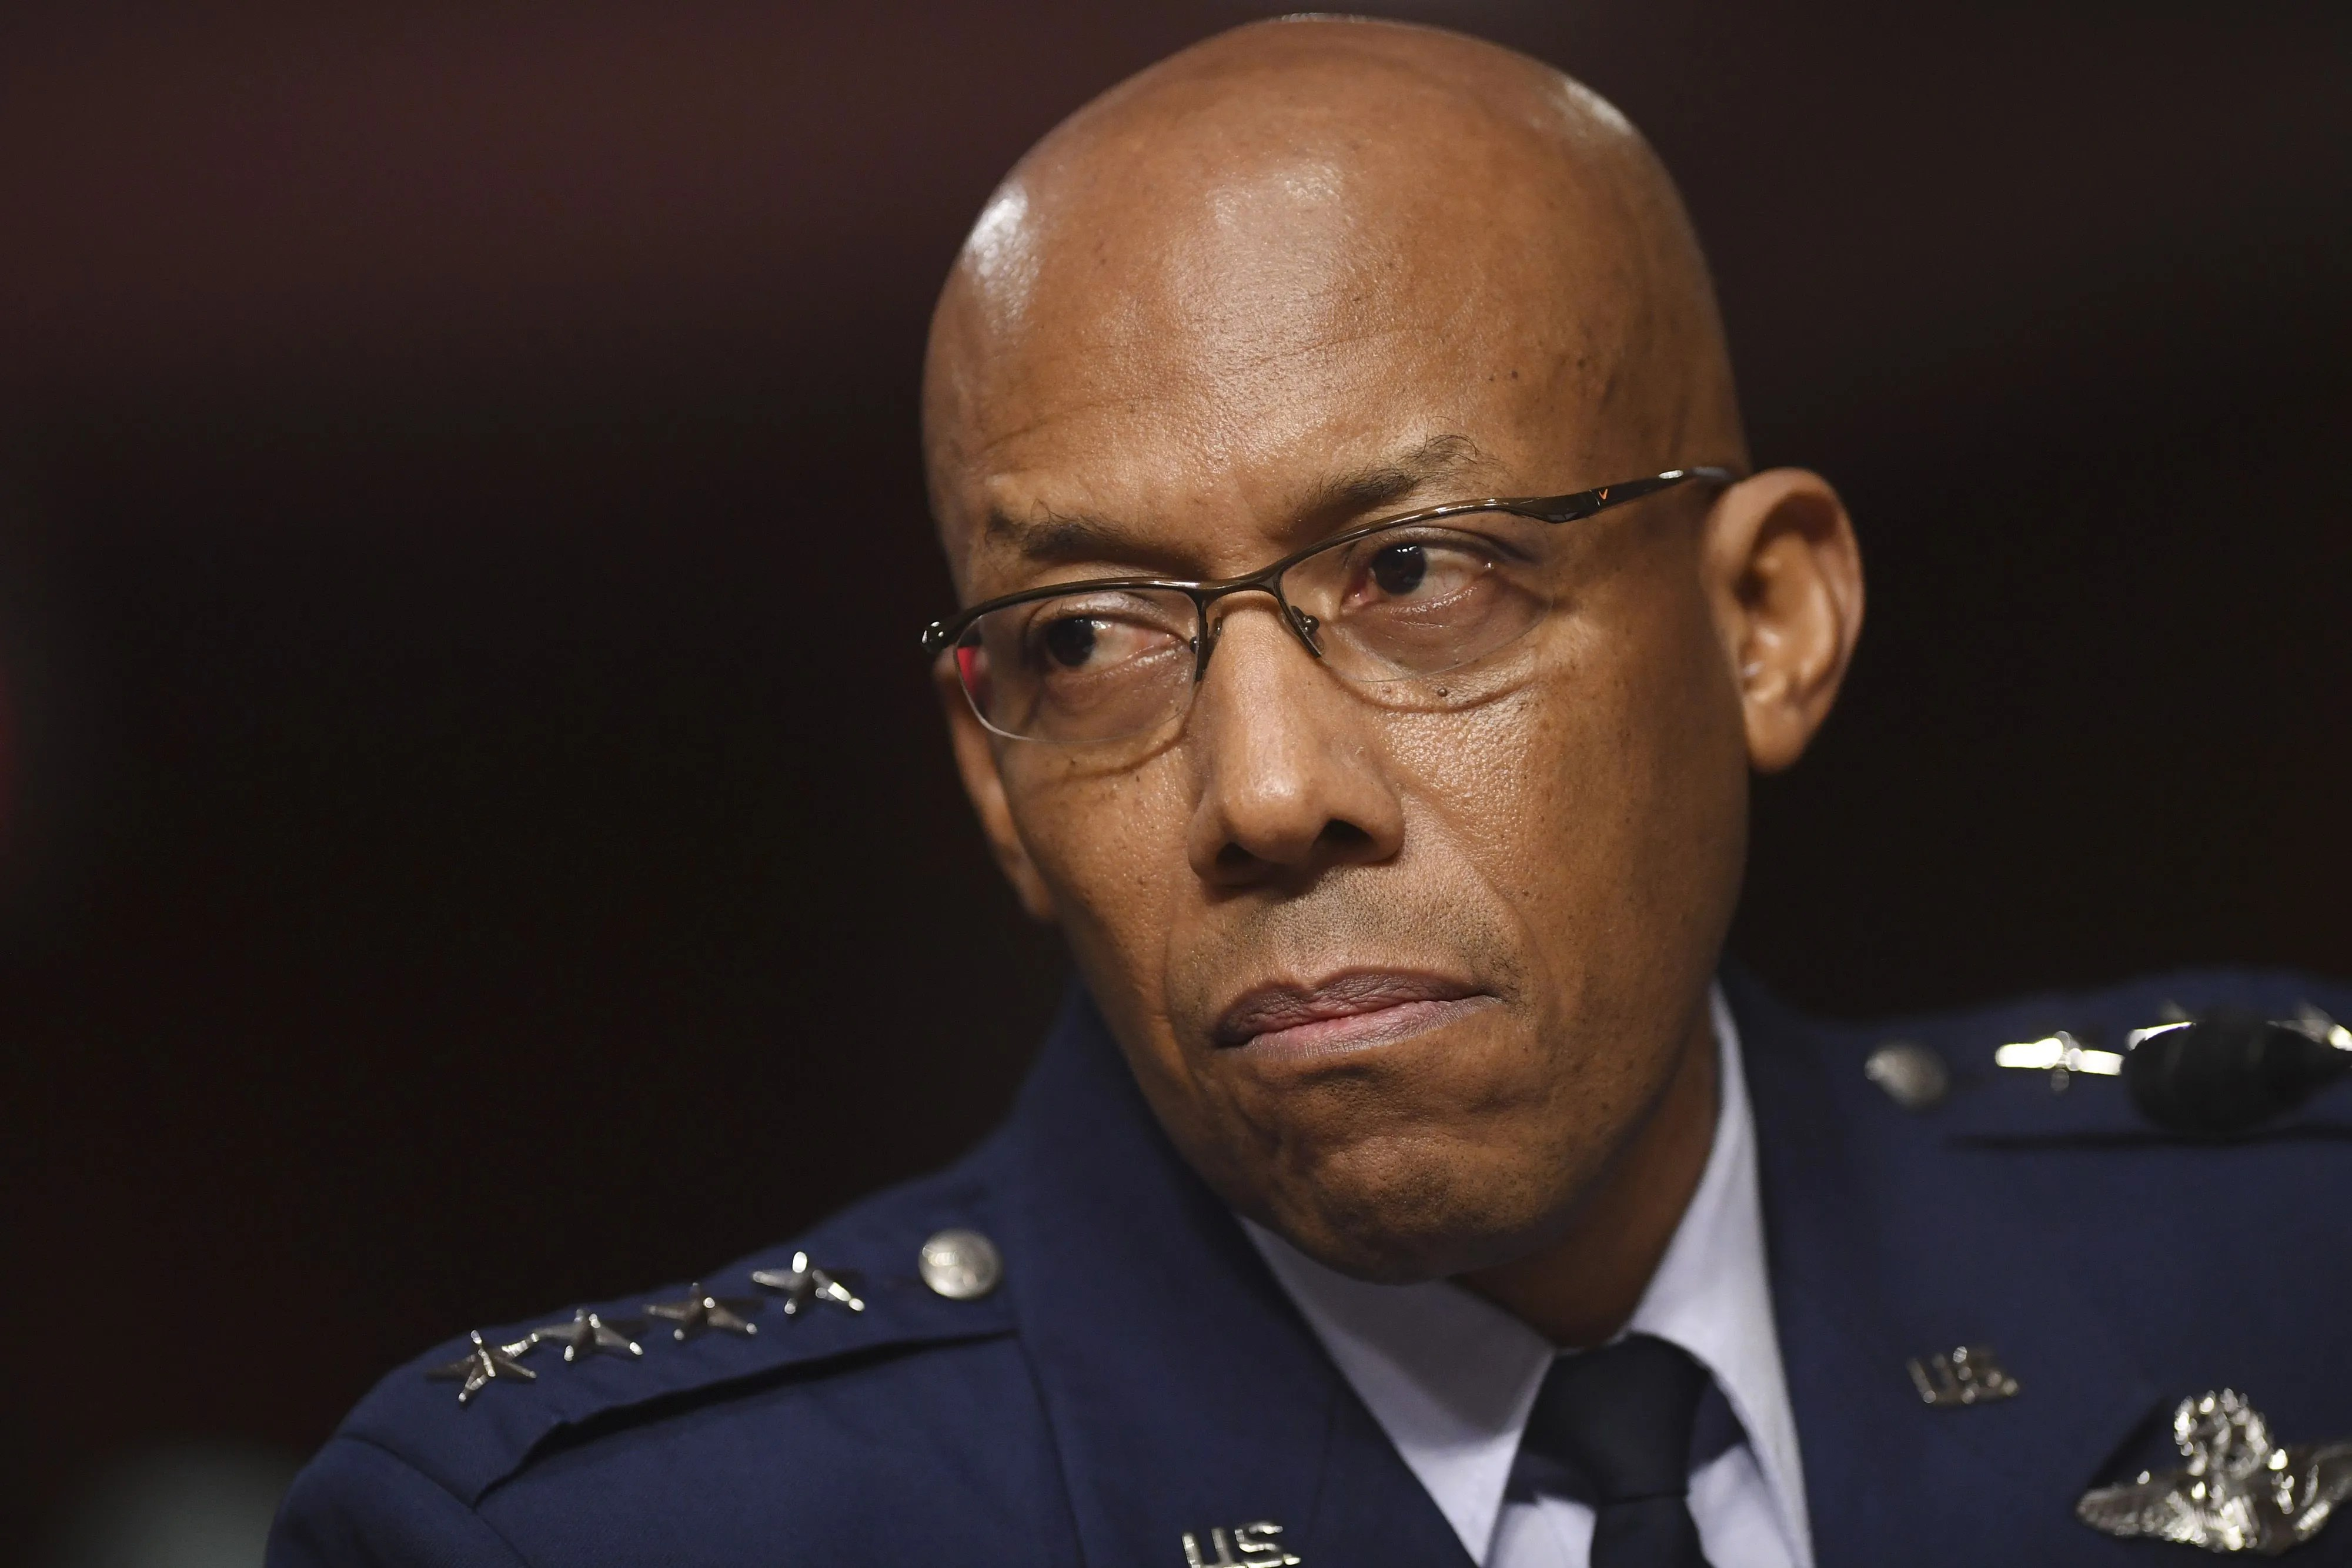 Gen. Charles Q. Brown Jr. testifies on his nomination to be Chief of Staff, United States Air Force, before the Senate Armed Services Committee in Washington on May 7, 2020. The Senate confirmed him in June, the first African American to ever lead one of the Pentagon's six armed services.